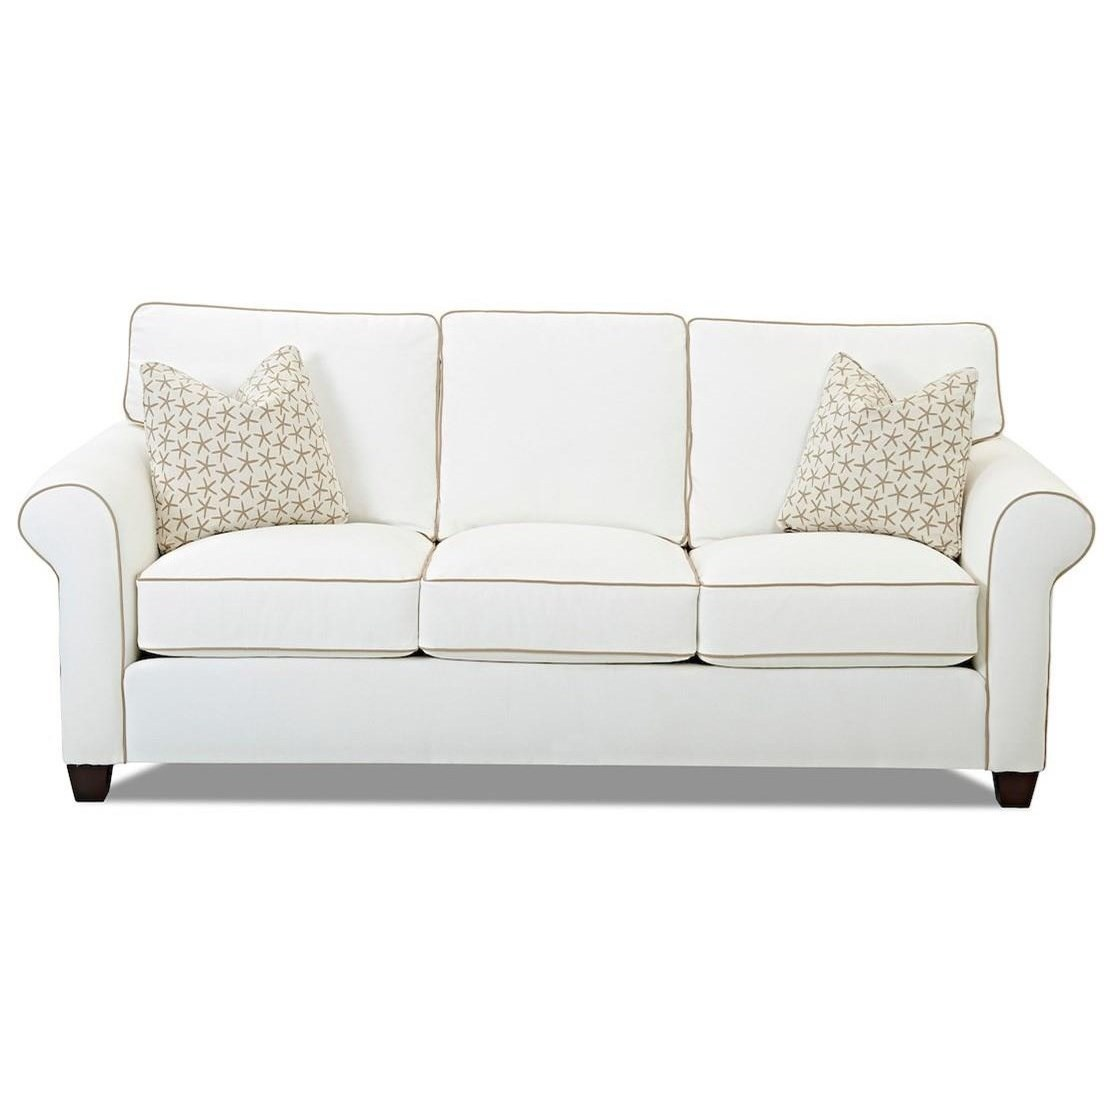 Lillington Extra Large Enso Queen Sleeper Sofa by Klaussner at Catalog Outlet